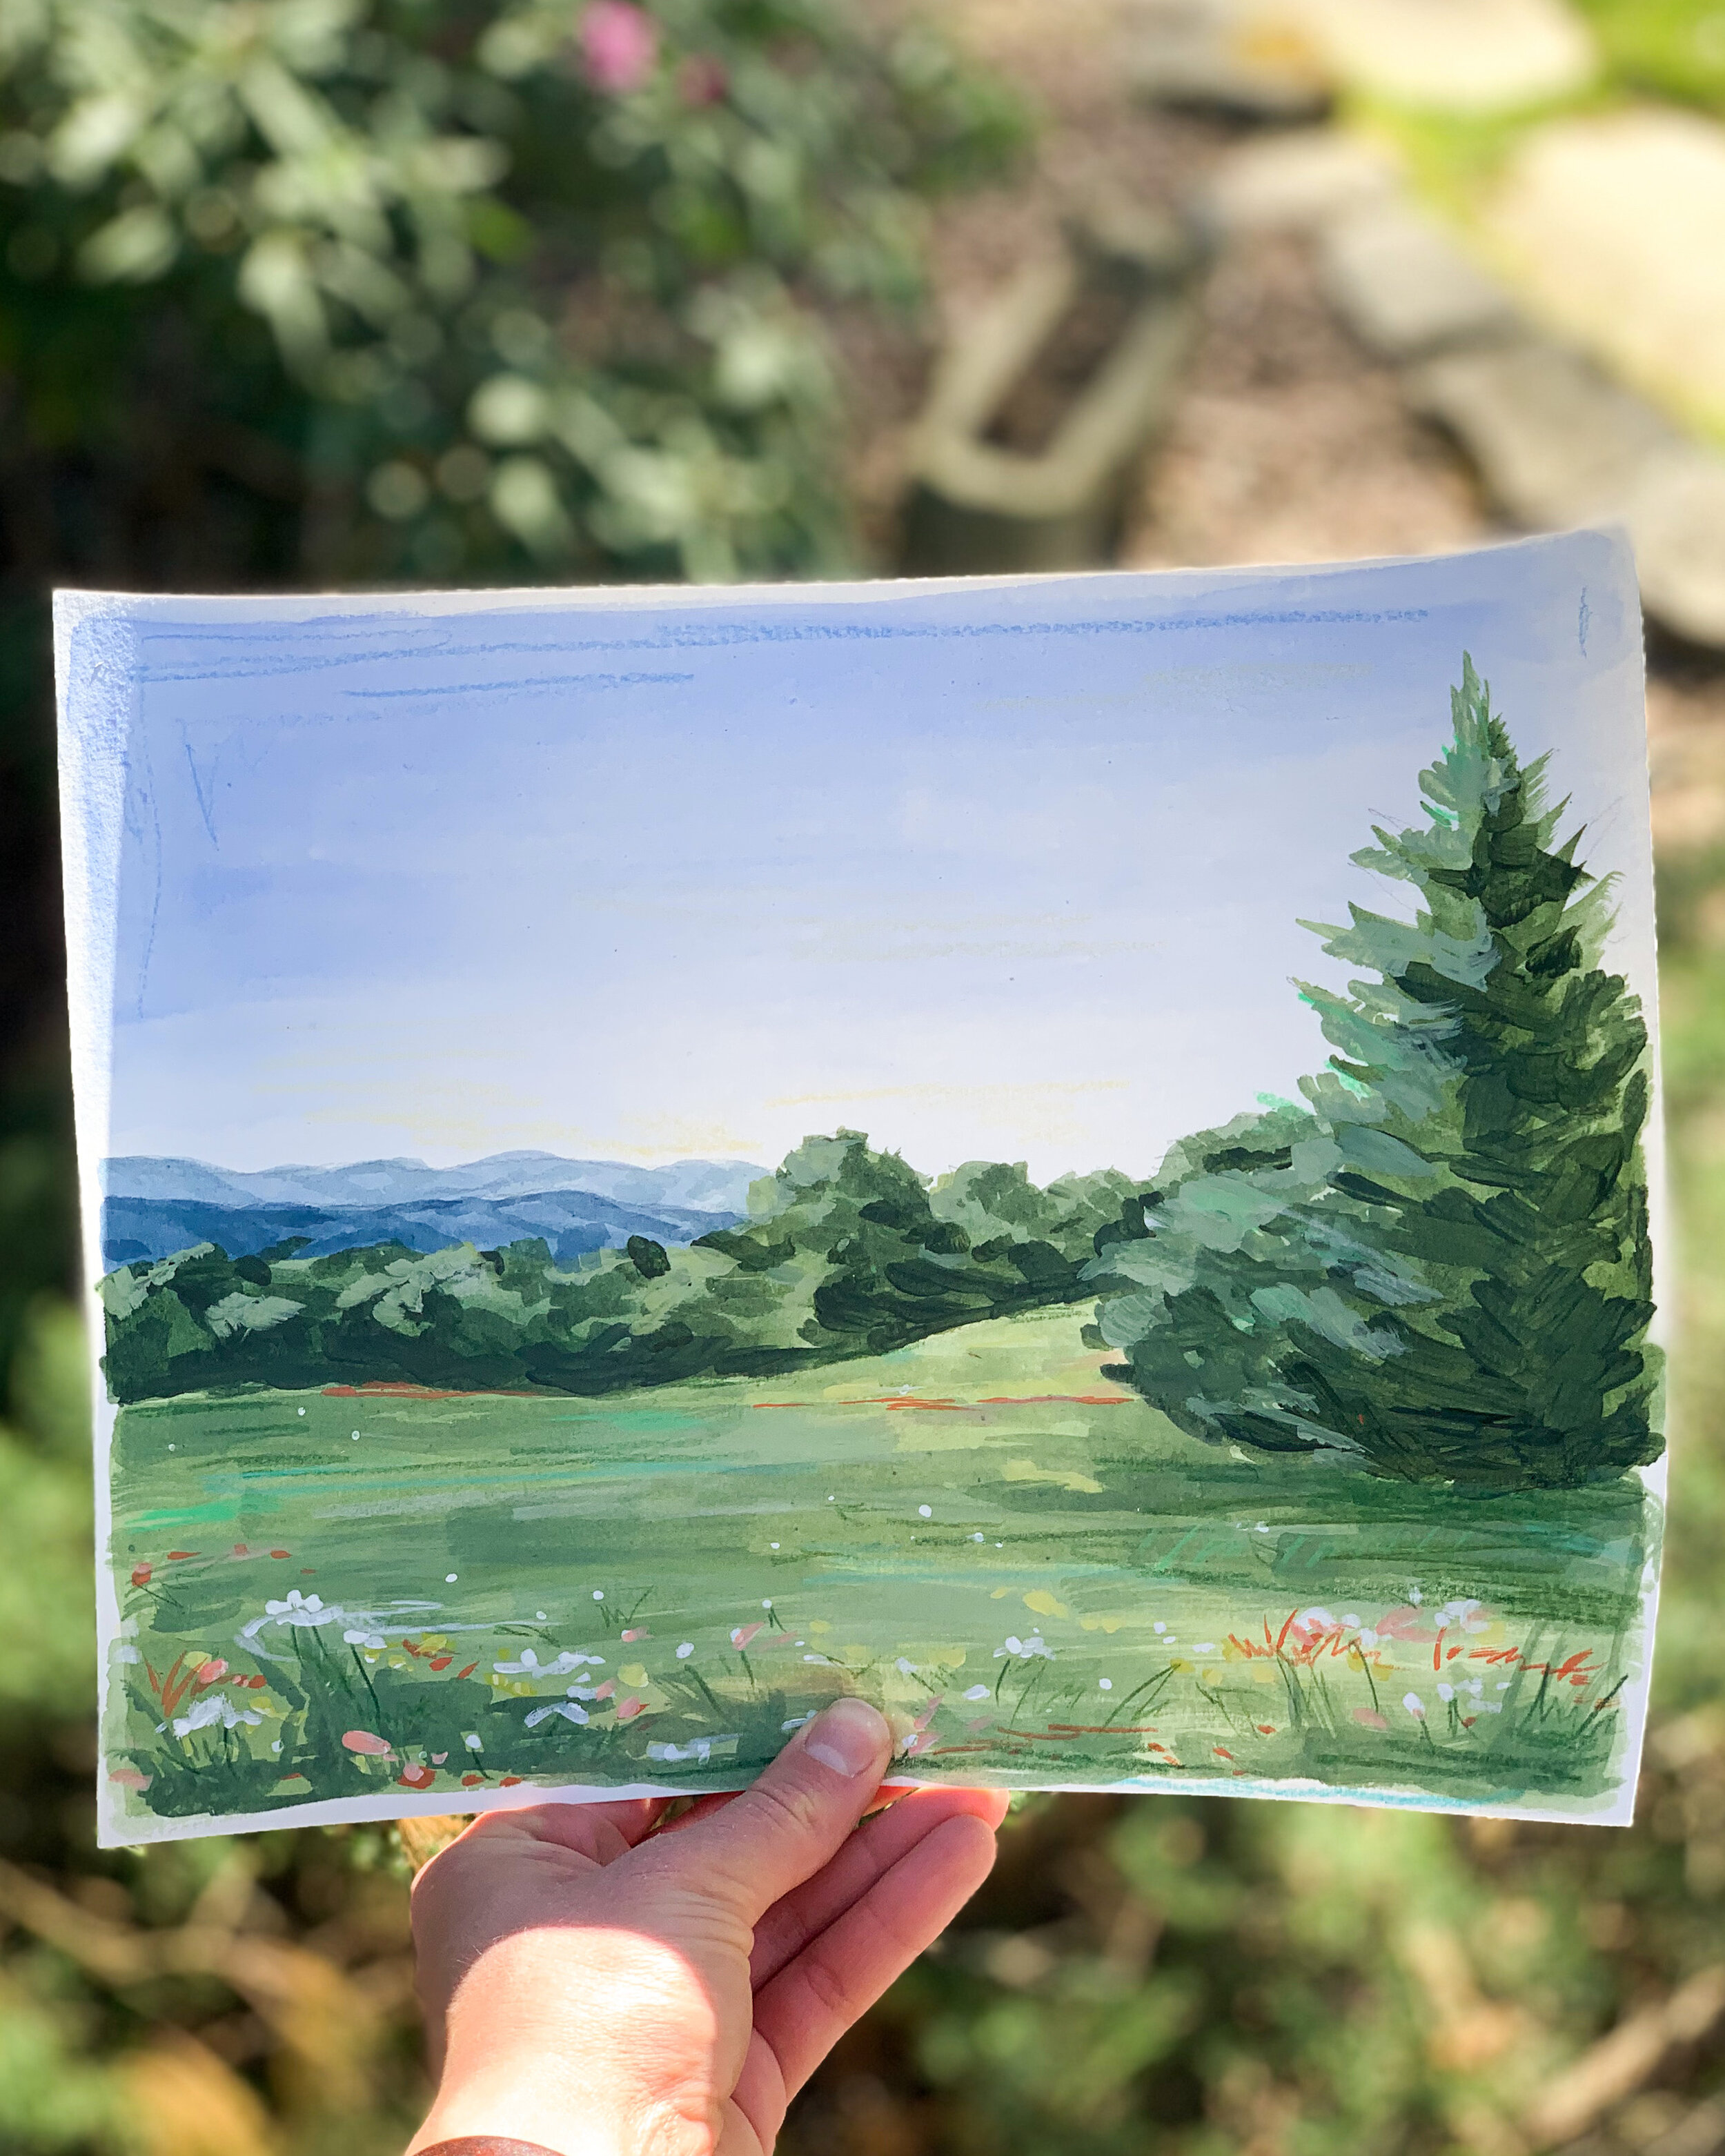 I hosted a landscape painting class on IG live and LOVED getting to paint with everyone!